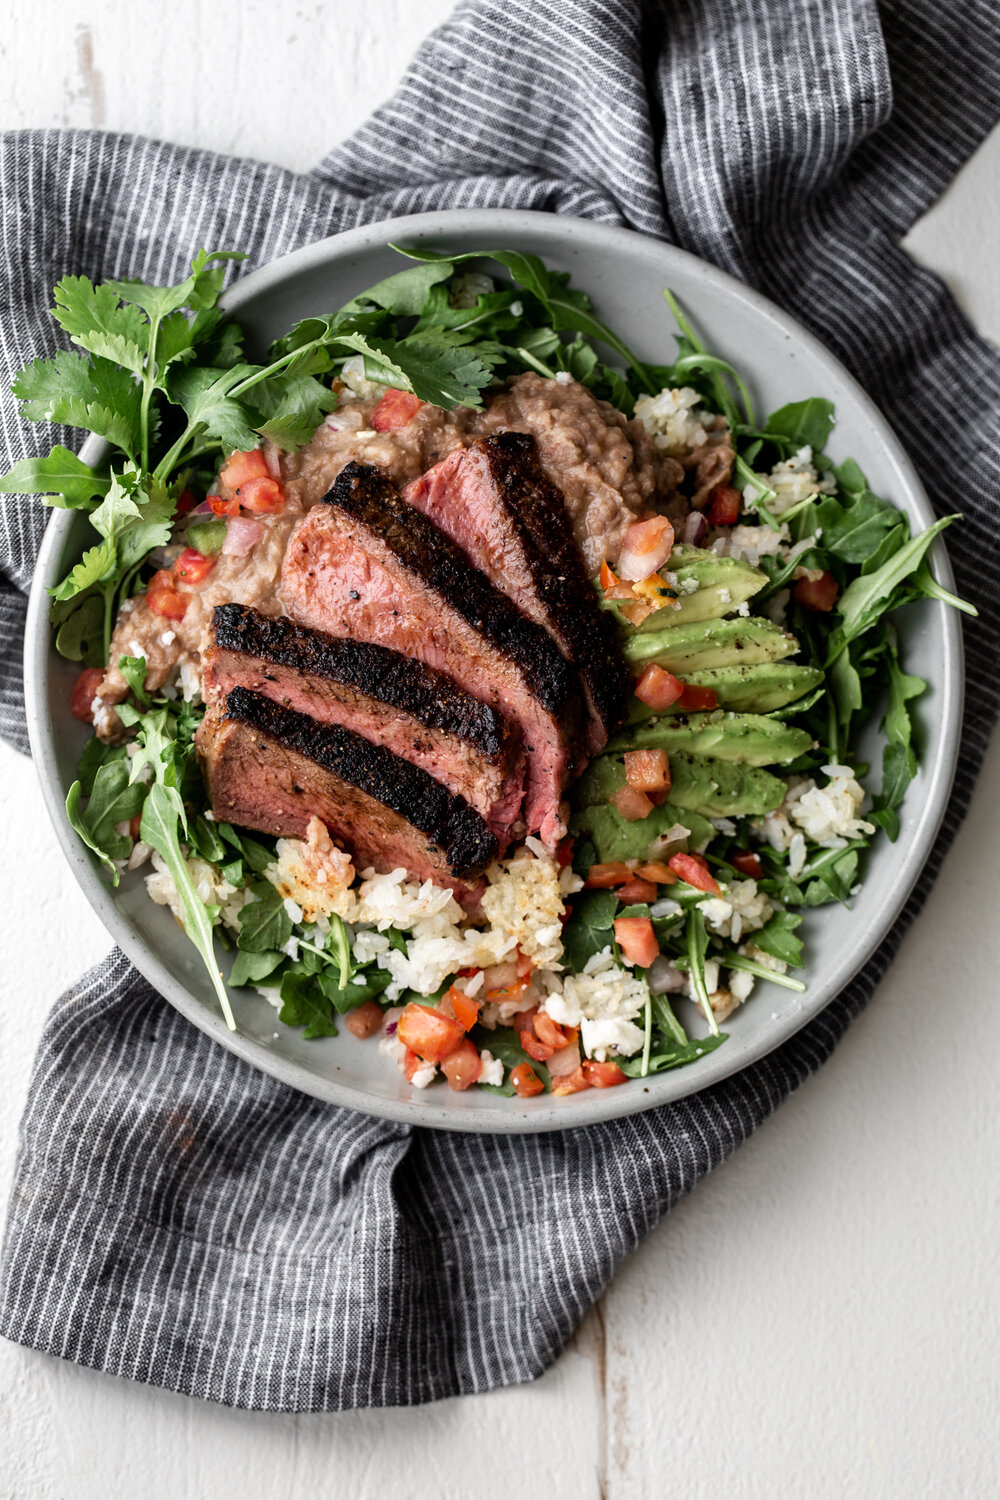 Seared Steak with Refried Pinto Beans, Crispy Rice and Arugula recipe from cooking with cocktail rings